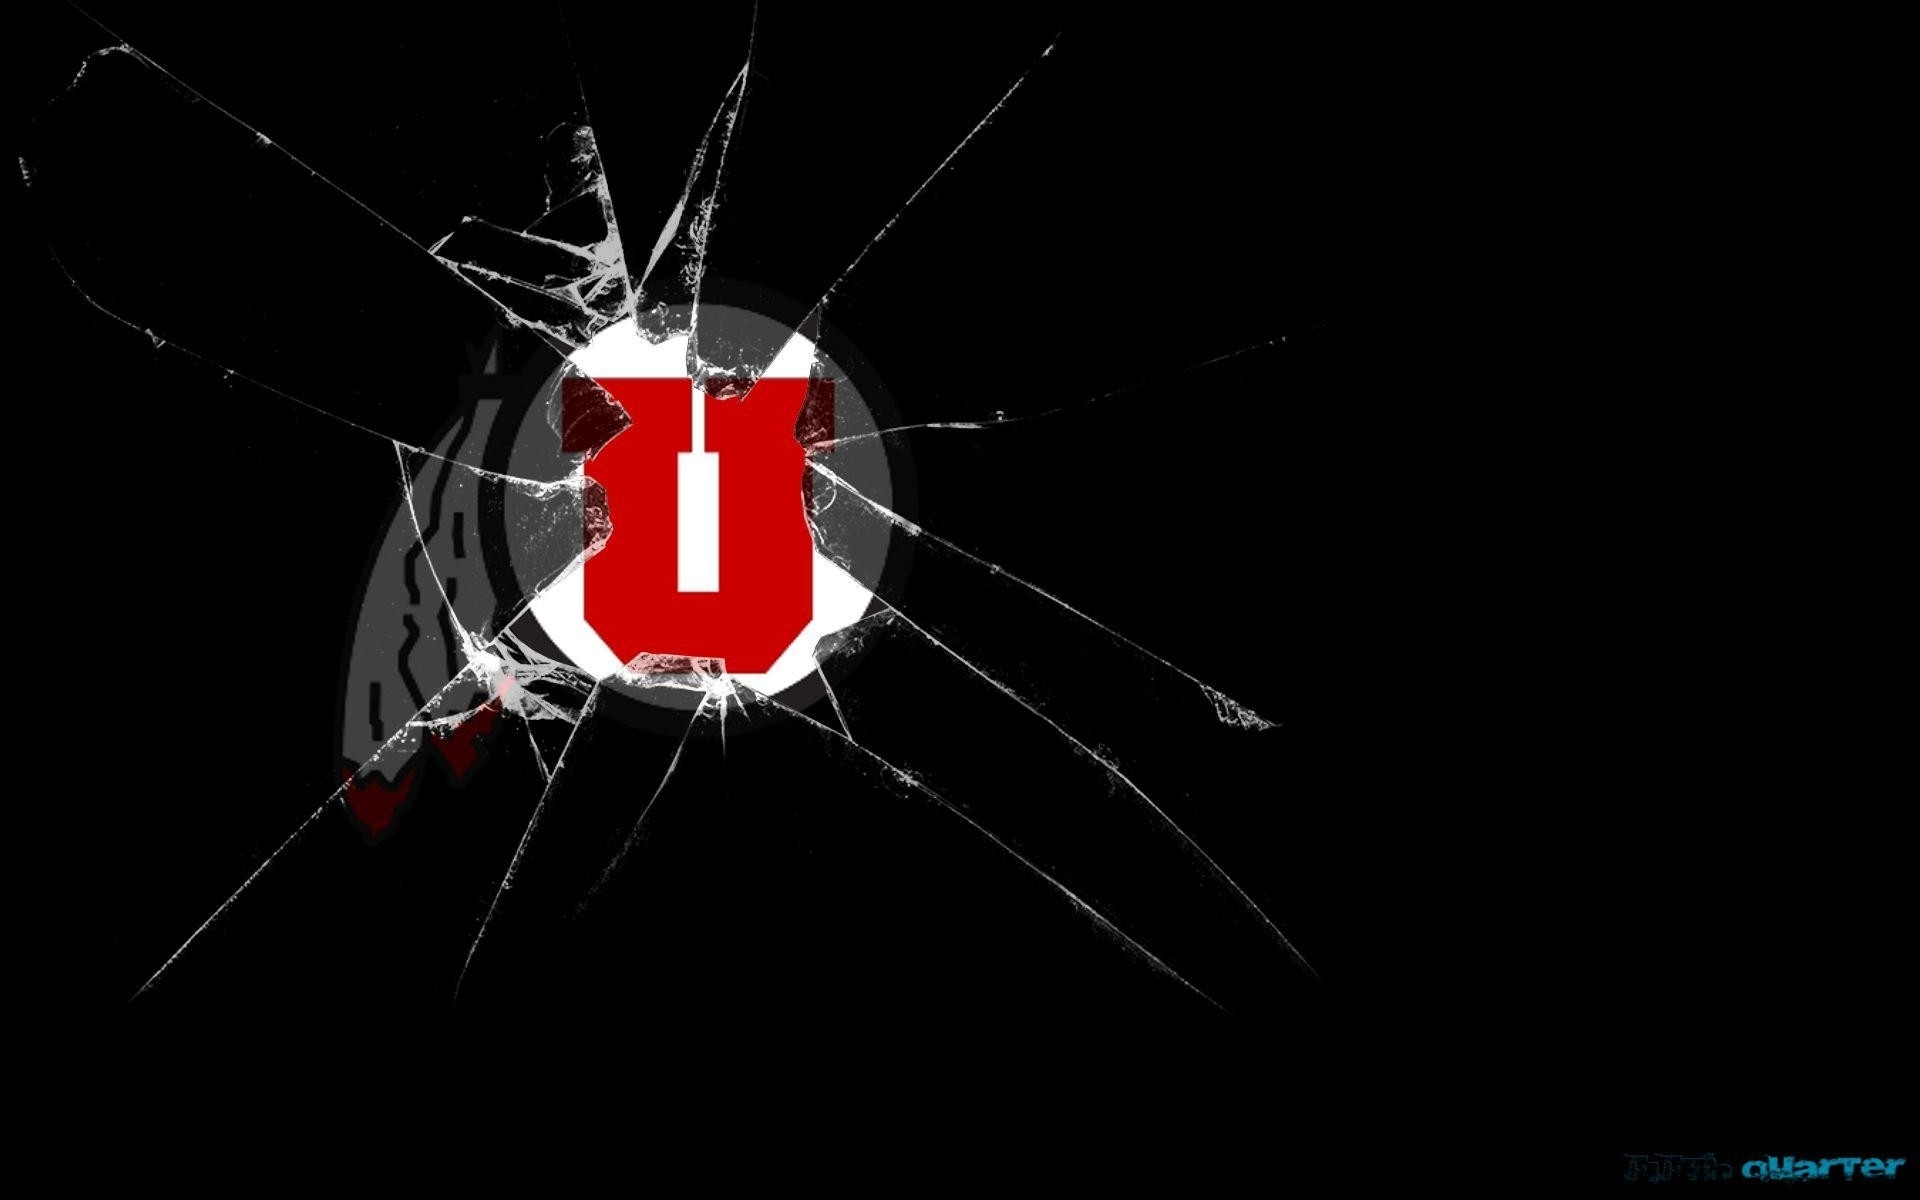 10 Latest University Of Utah Wallpaper FULL HD 1080p For PC Background